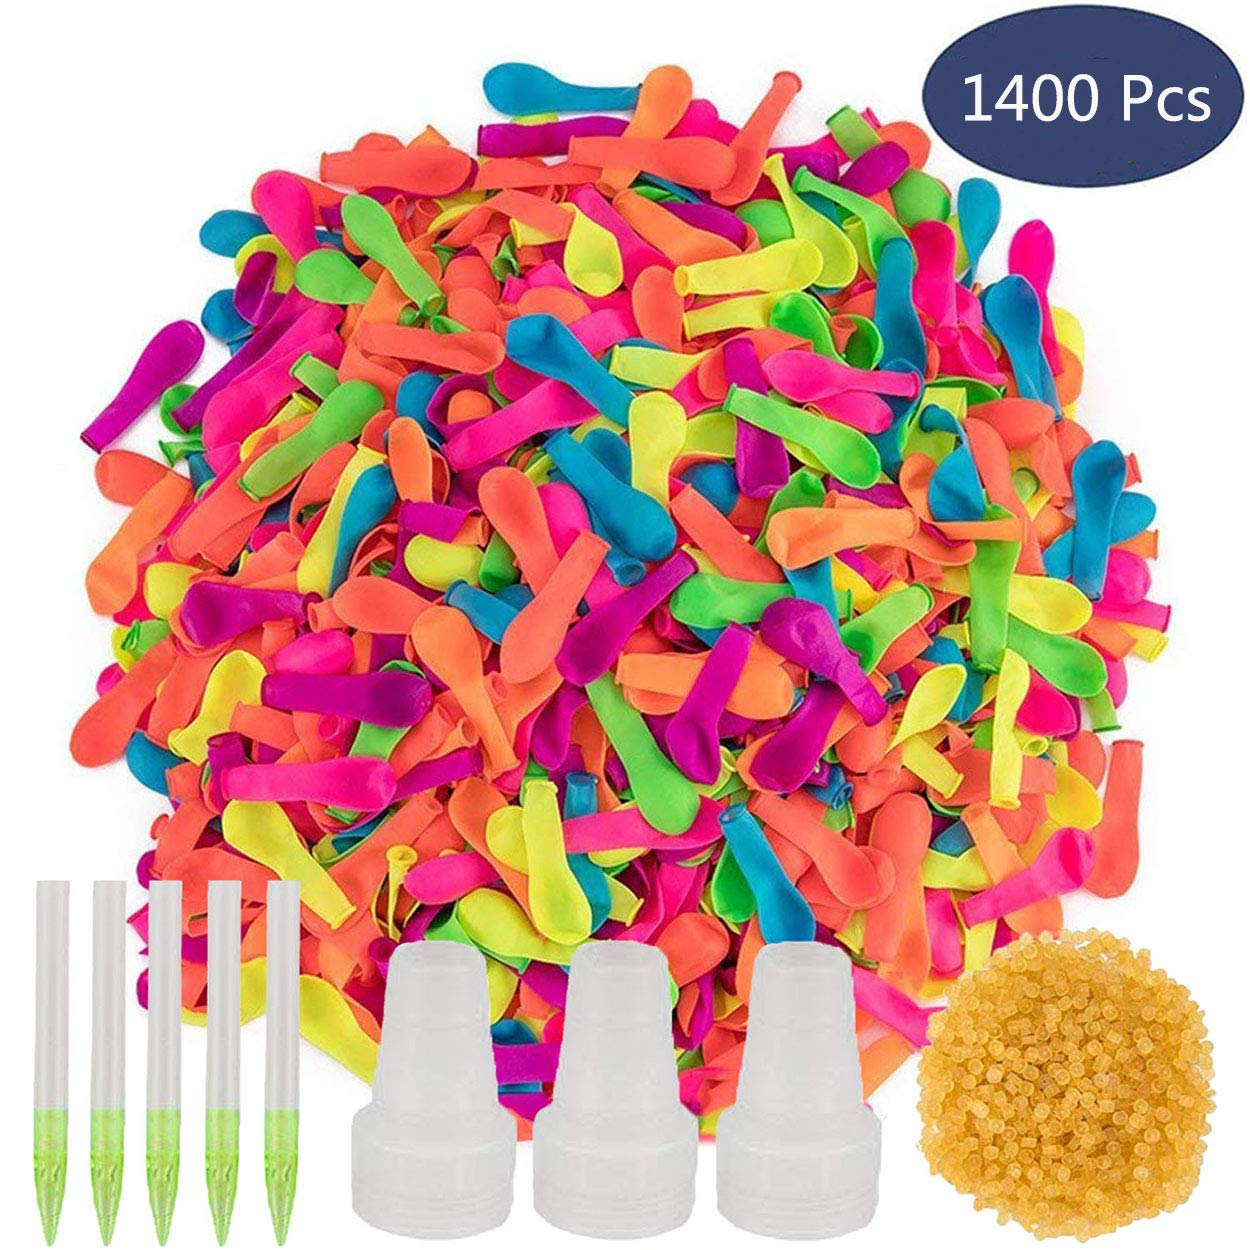 Ueerdand 1400 Pack Water Balloons Refill Kits Quick & Easy Latex Water Bomb Balloons for Kids and Adults Water Fight Games, Swimming Pool Party Summer Splash Fun